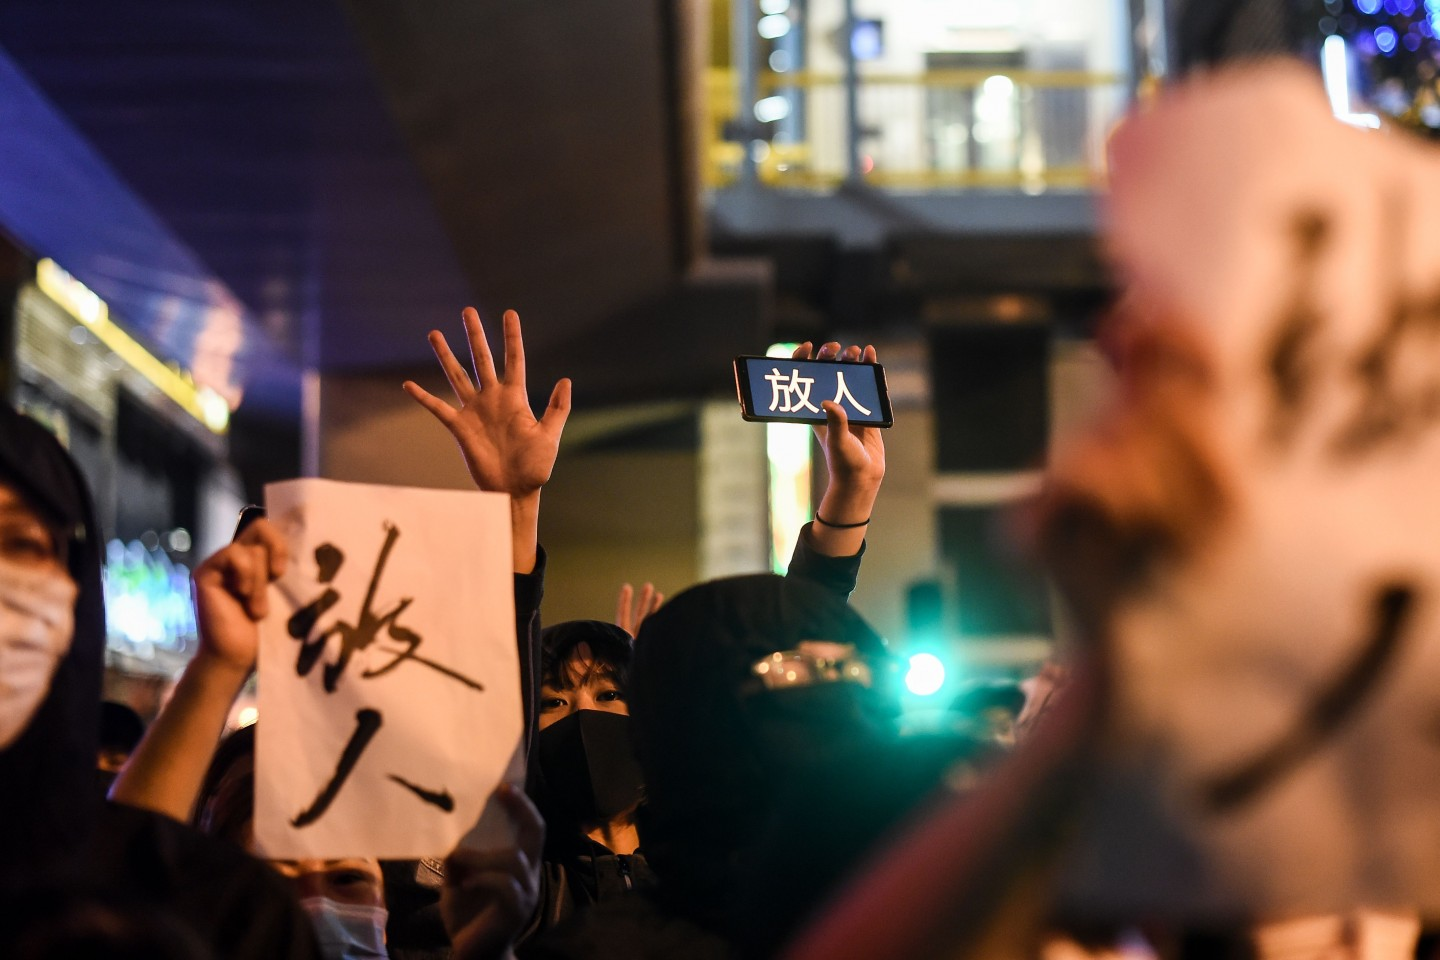 """People chant slogans and hold the words """"release (the protesters)"""" near a police-cordoned area to show support for a small group of protesters barricaded for over a week inside the Hong Kong Polytechnic University campus in Hung Hom district in Hong Kong on November 25, 2019. (Ye Aung Thu/AFP)"""